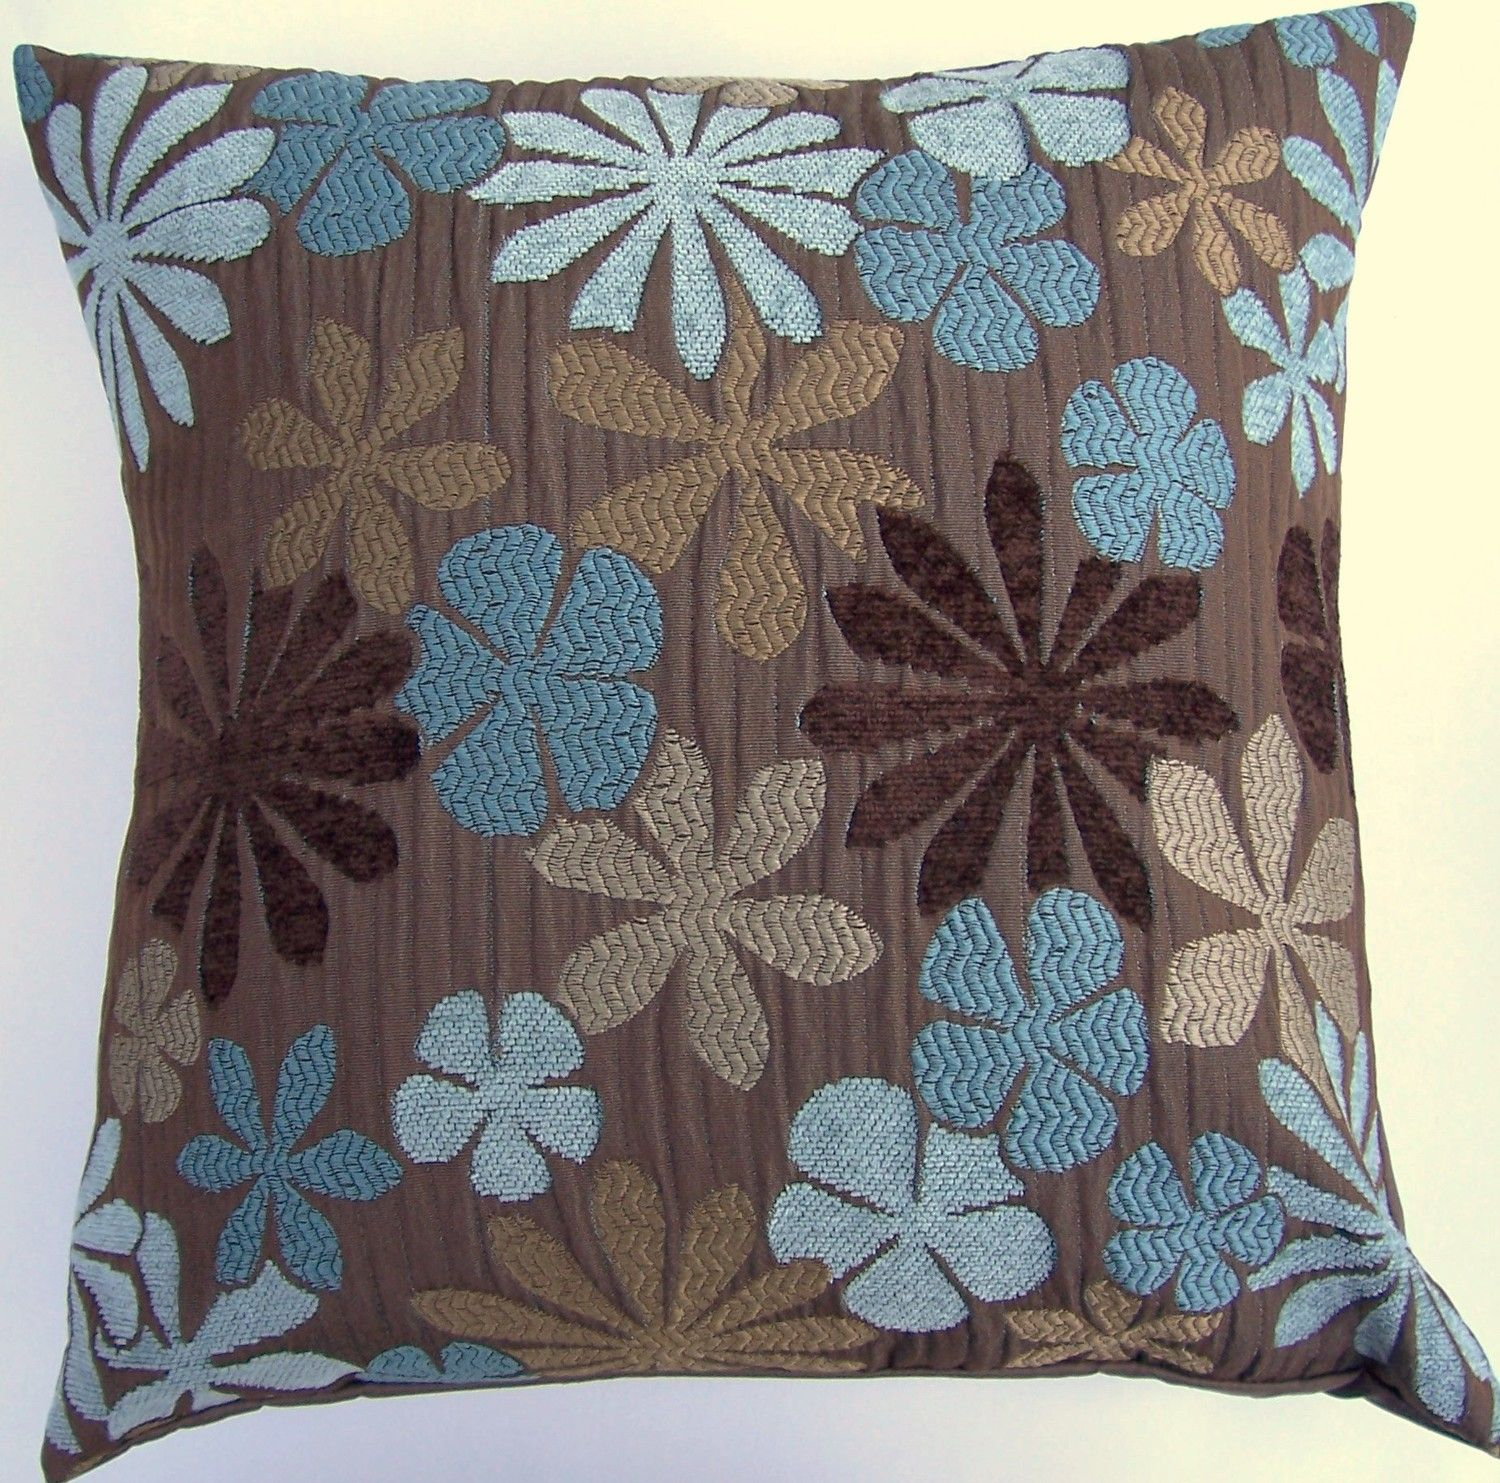 Brown Throw Pillow Cover with Turqouise Blue, Aqua & Tan Flowers - 16 x 16. $16.99, via Etsy.